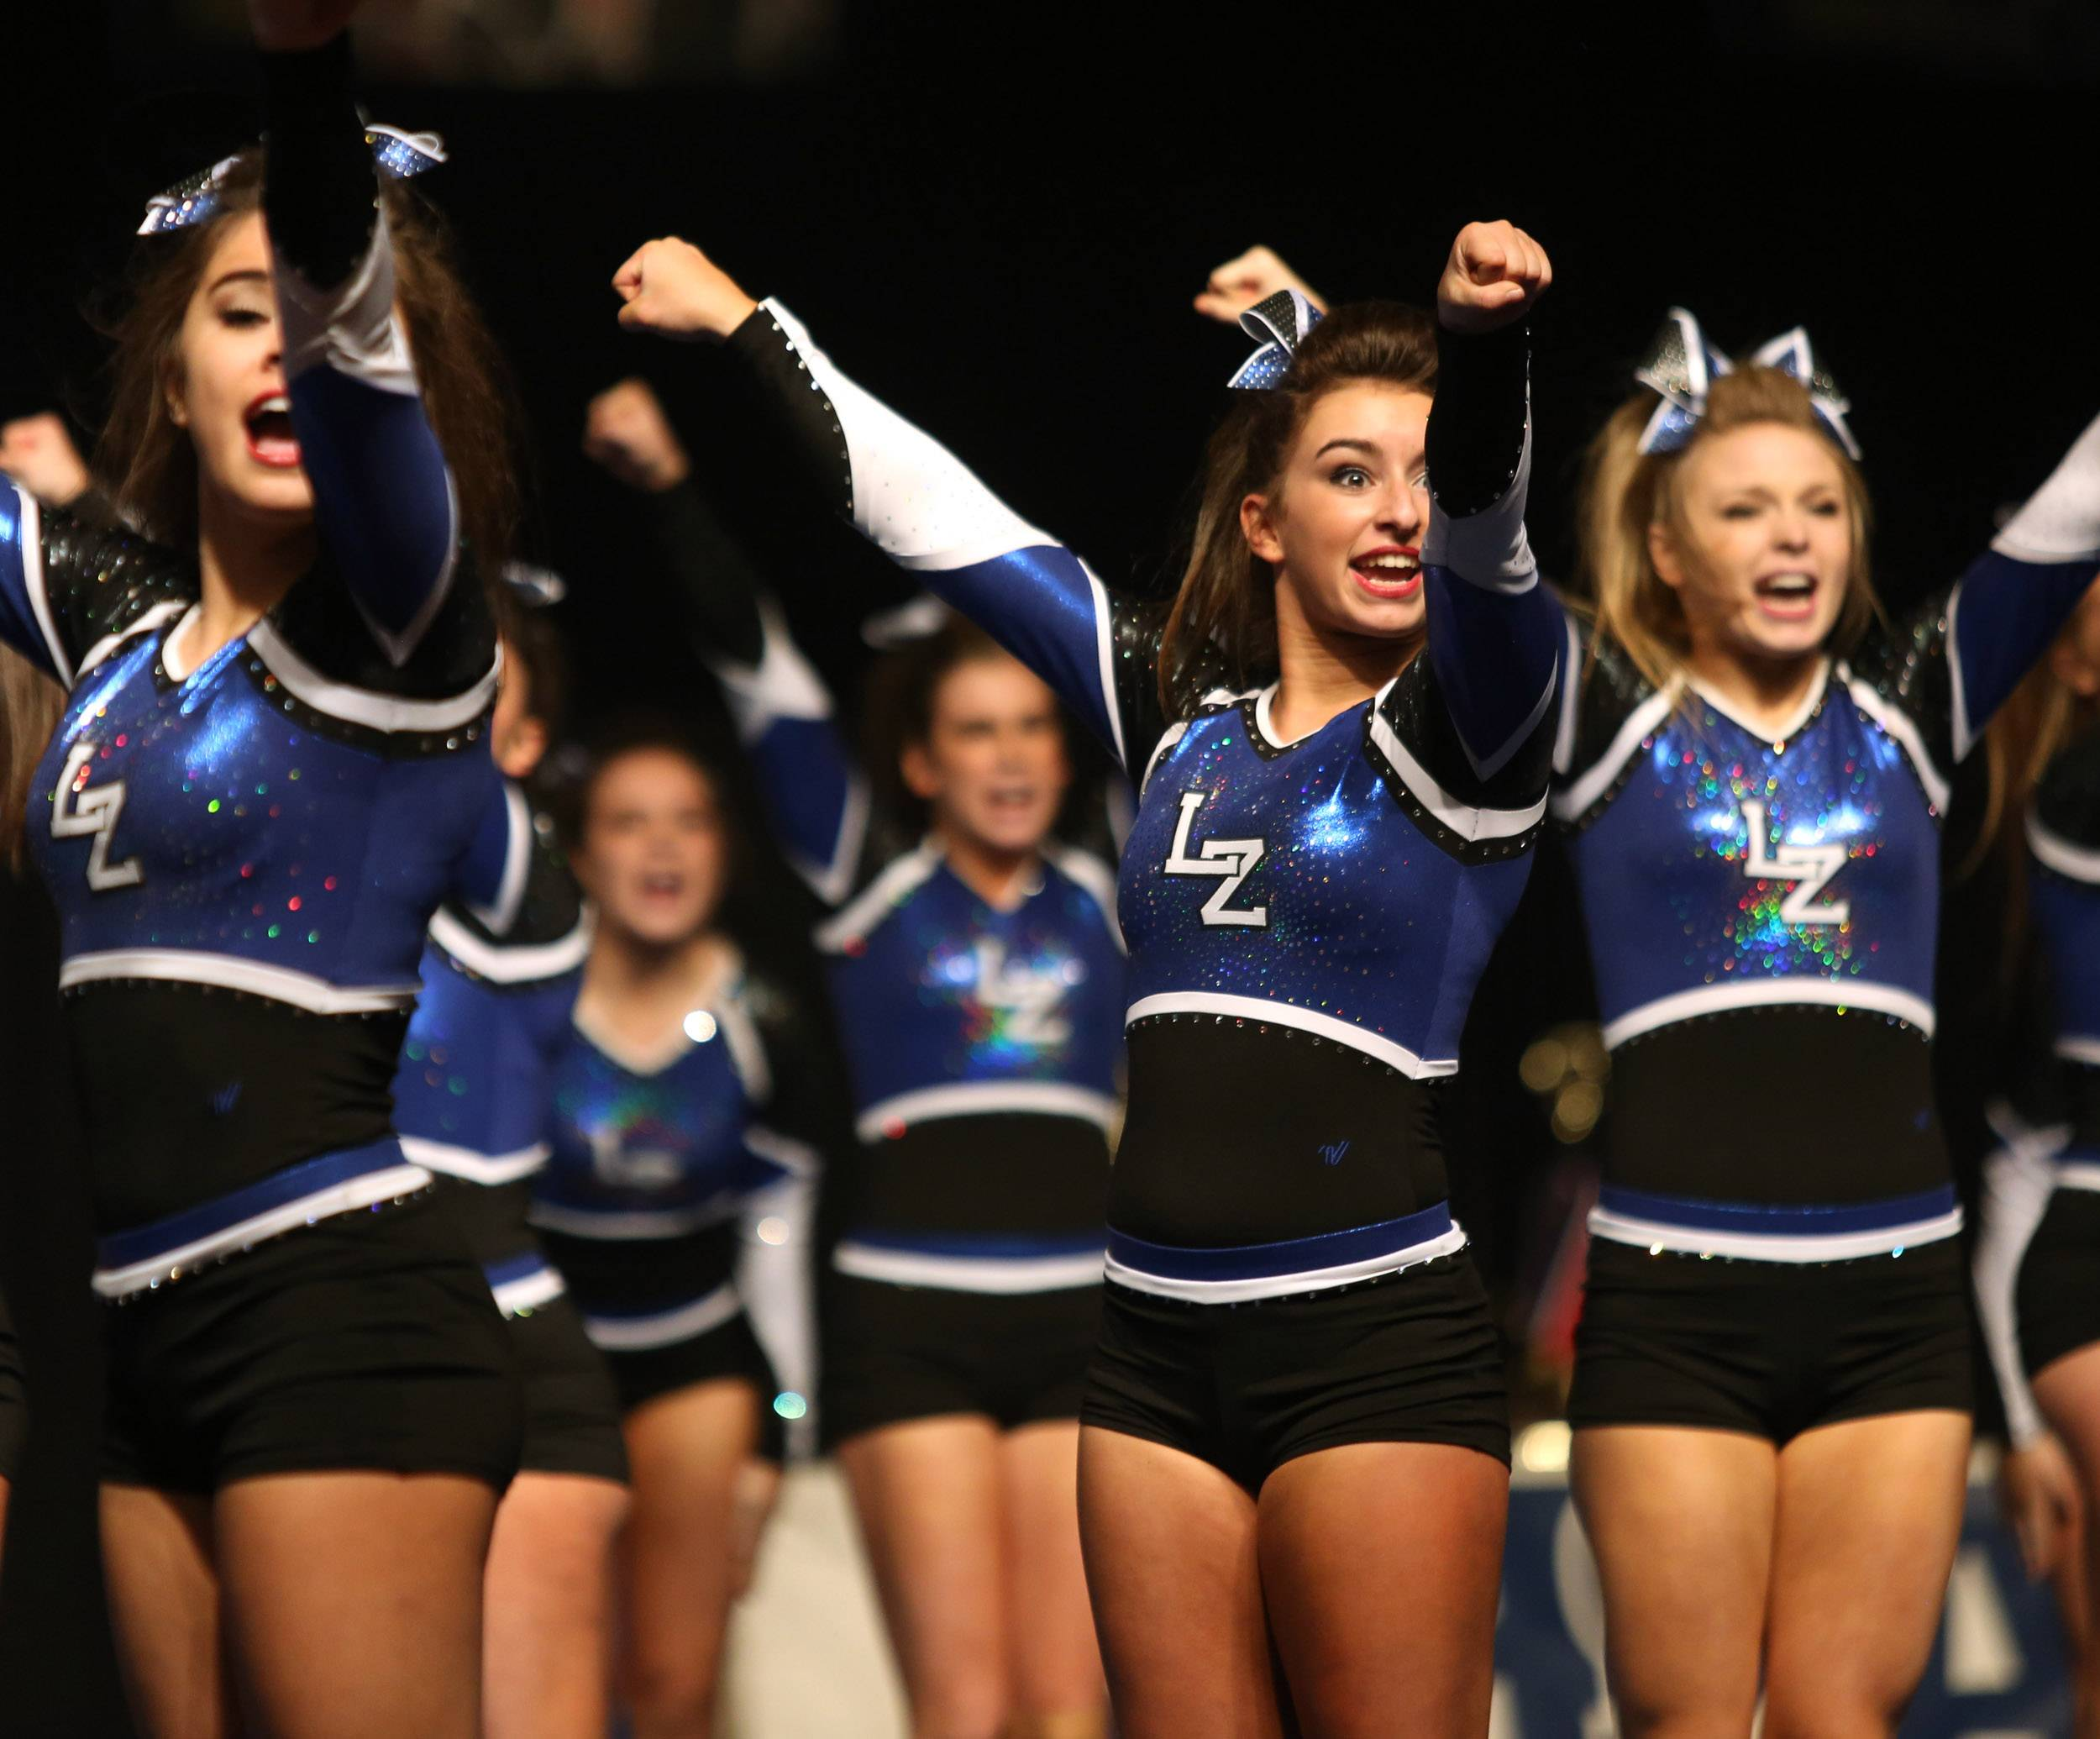 narrative essay on cheerleading Breanna fennell msingram july 13, 2015 sophomore year of high school was a great year for me to become more literate in cheerleading i have been cheering since i was a young girl and did not imagine that.